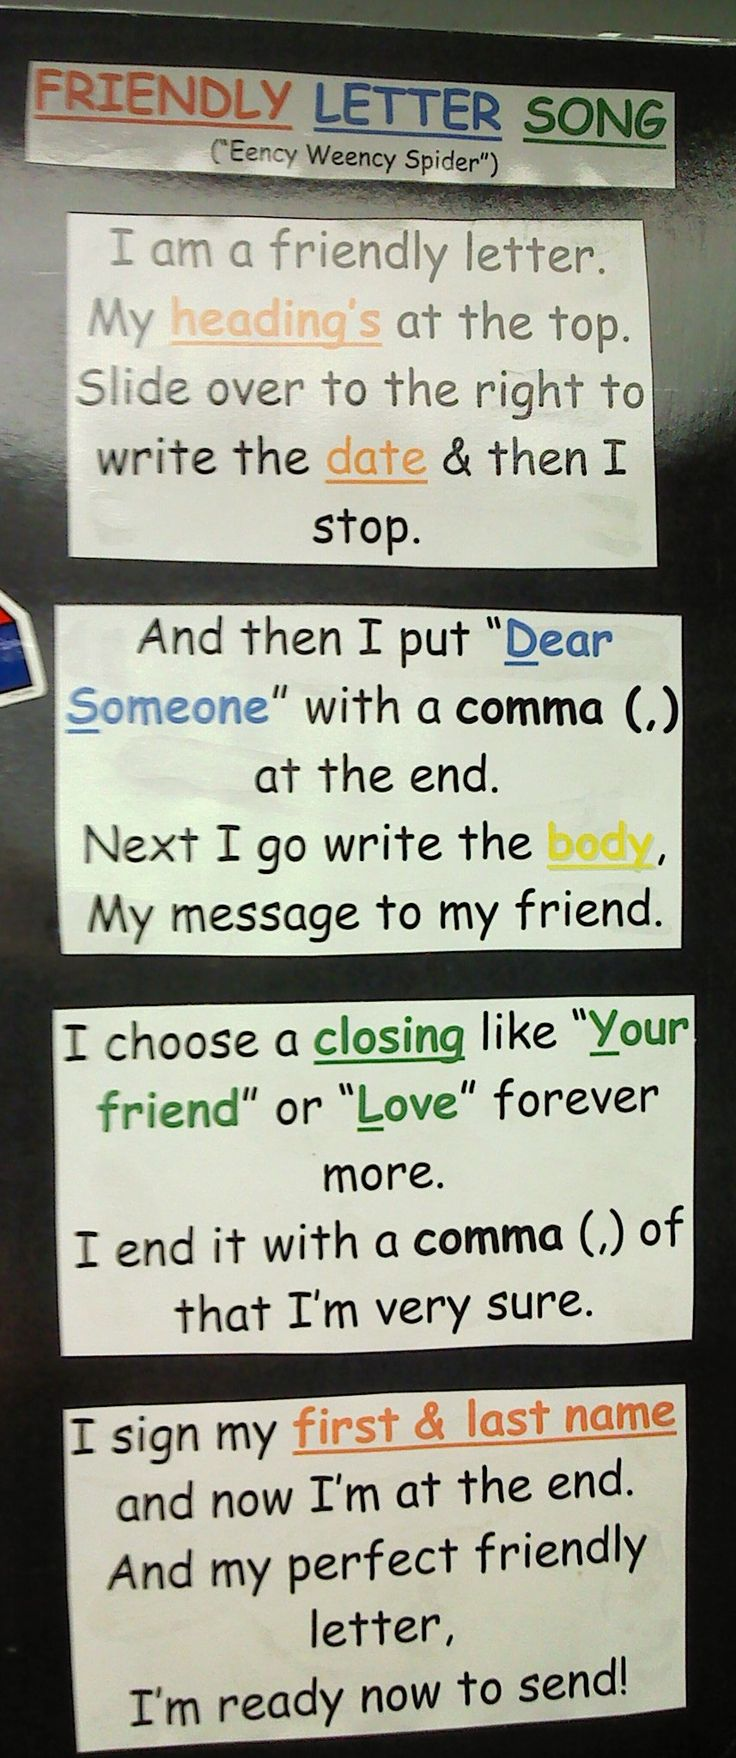 format of english letter%0A friendly letter poem